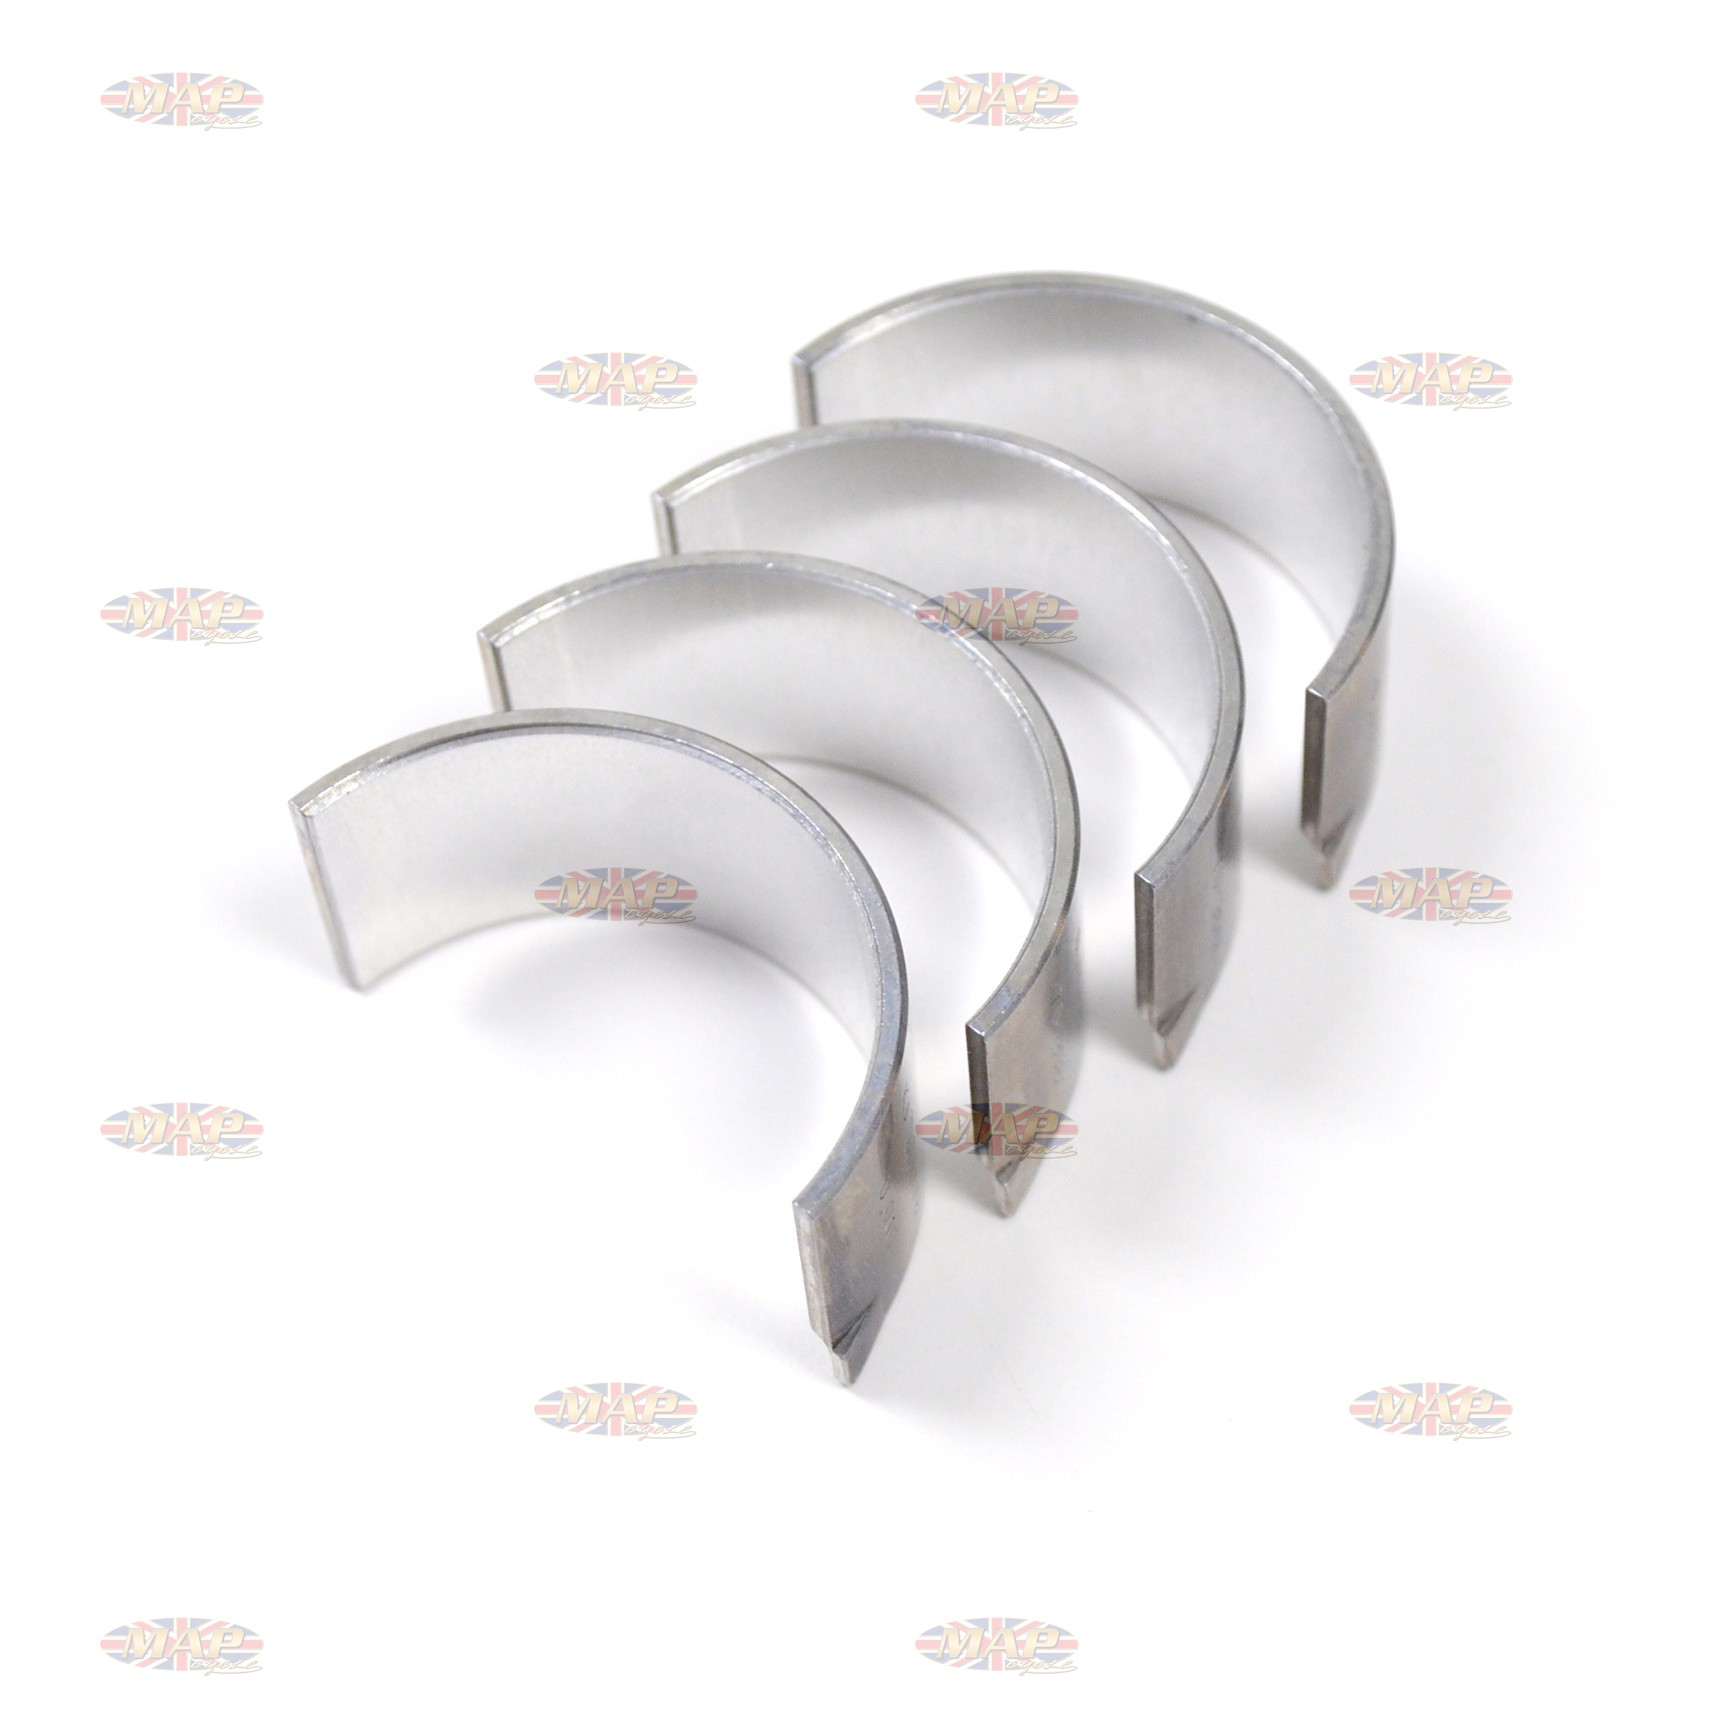 Triumph 650/750 Replacement Connecting Rod Bearing - .030 Oversize B2026M/E030